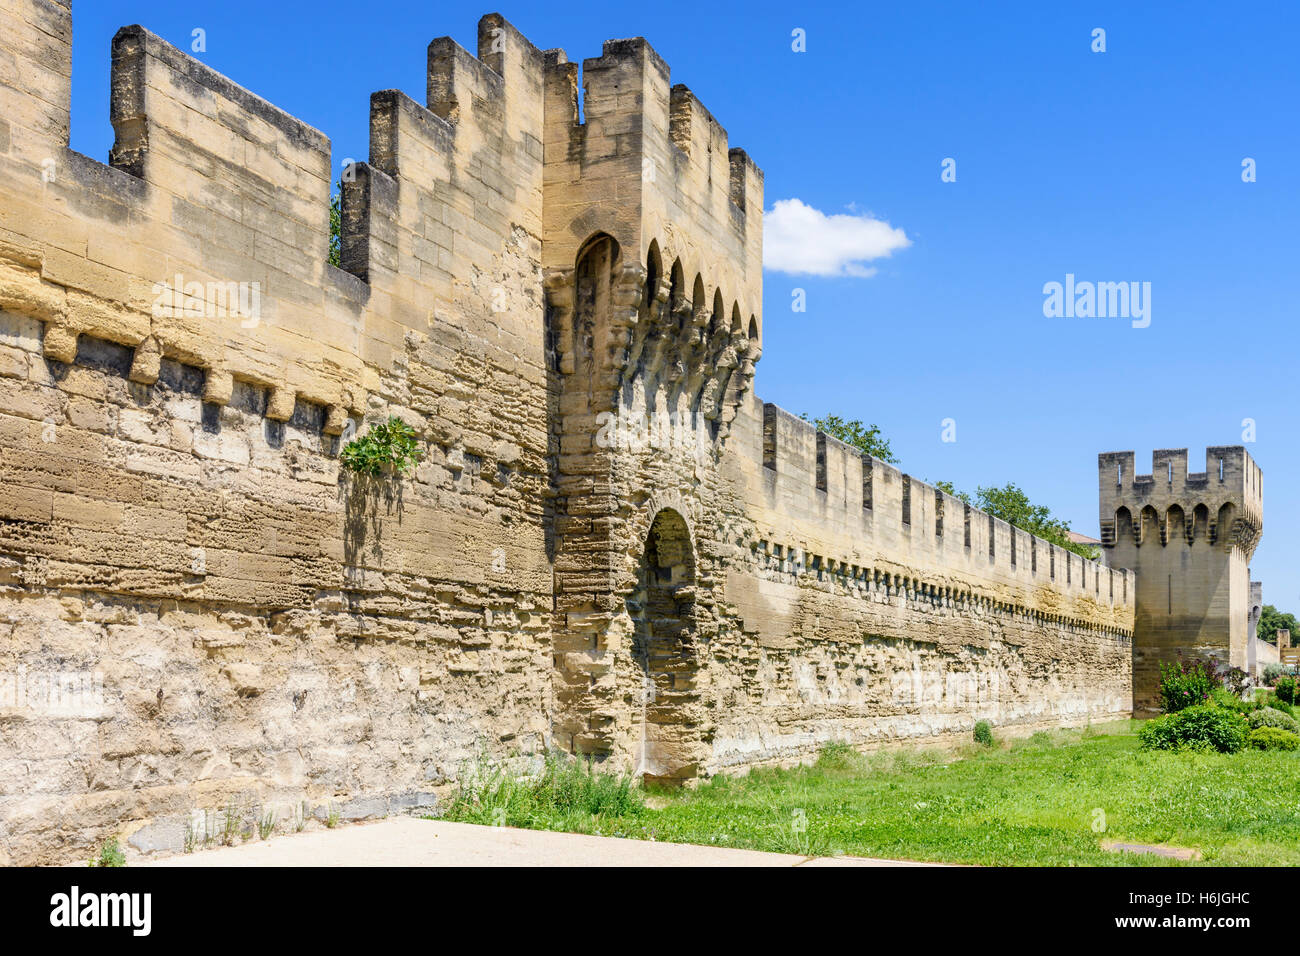 Defensive wall and tower, part of the southern section of the ramparts,  Avignon, France - Stock Image